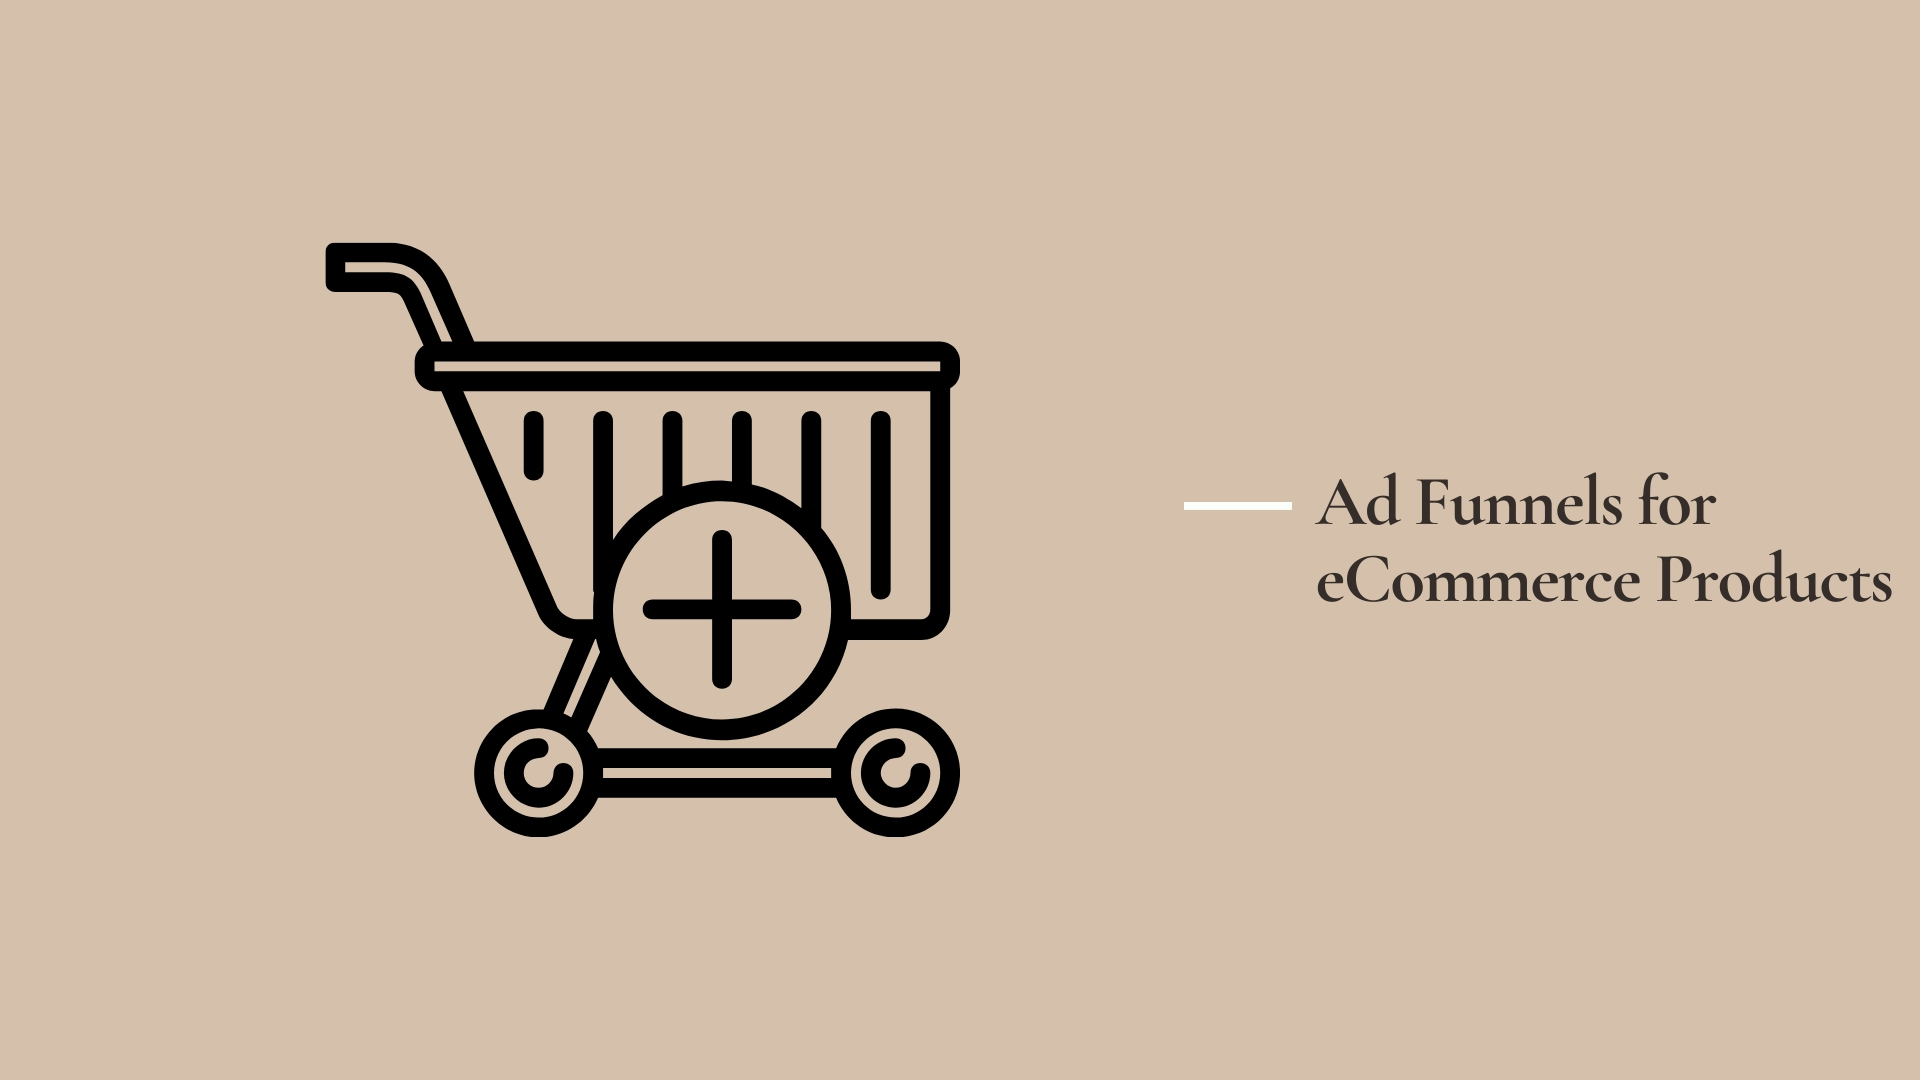 Ad Funnels for eCommerce Products